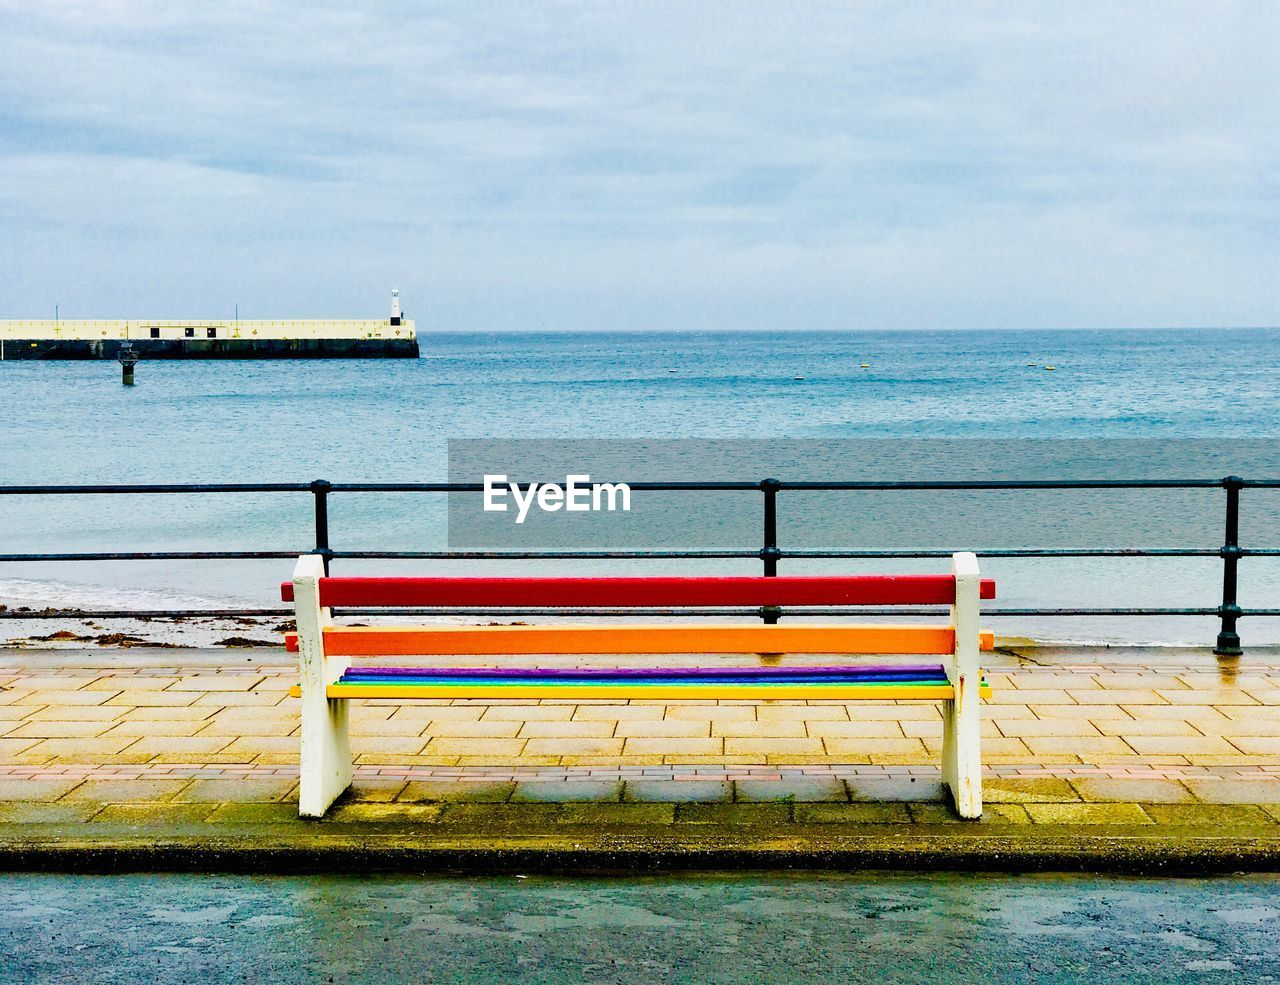 water, sea, sky, horizon over water, horizon, scenics - nature, nautical vessel, beauty in nature, cloud - sky, nature, transportation, tranquility, no people, tranquil scene, day, land, mode of transportation, beach, railing, outdoors